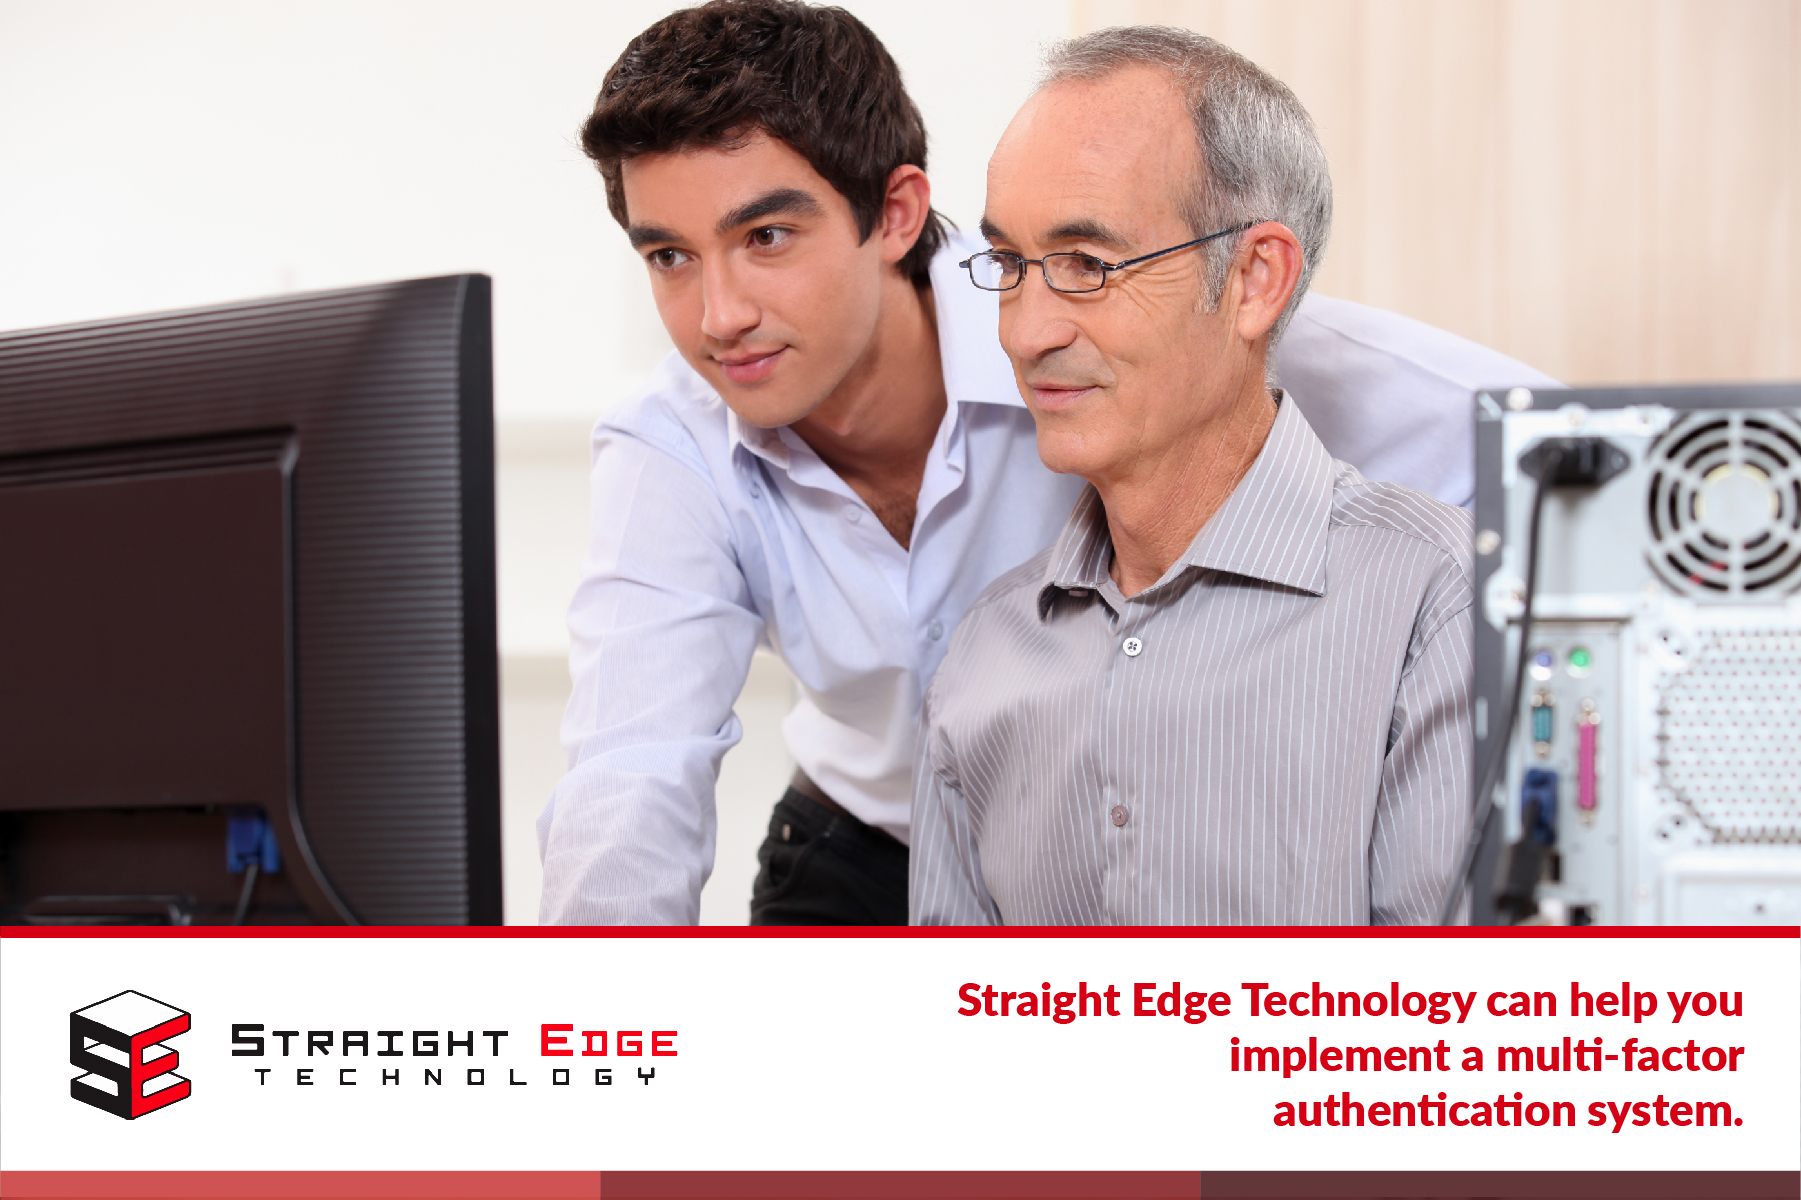 straight edge technology can help you implement a multi factor authentication system